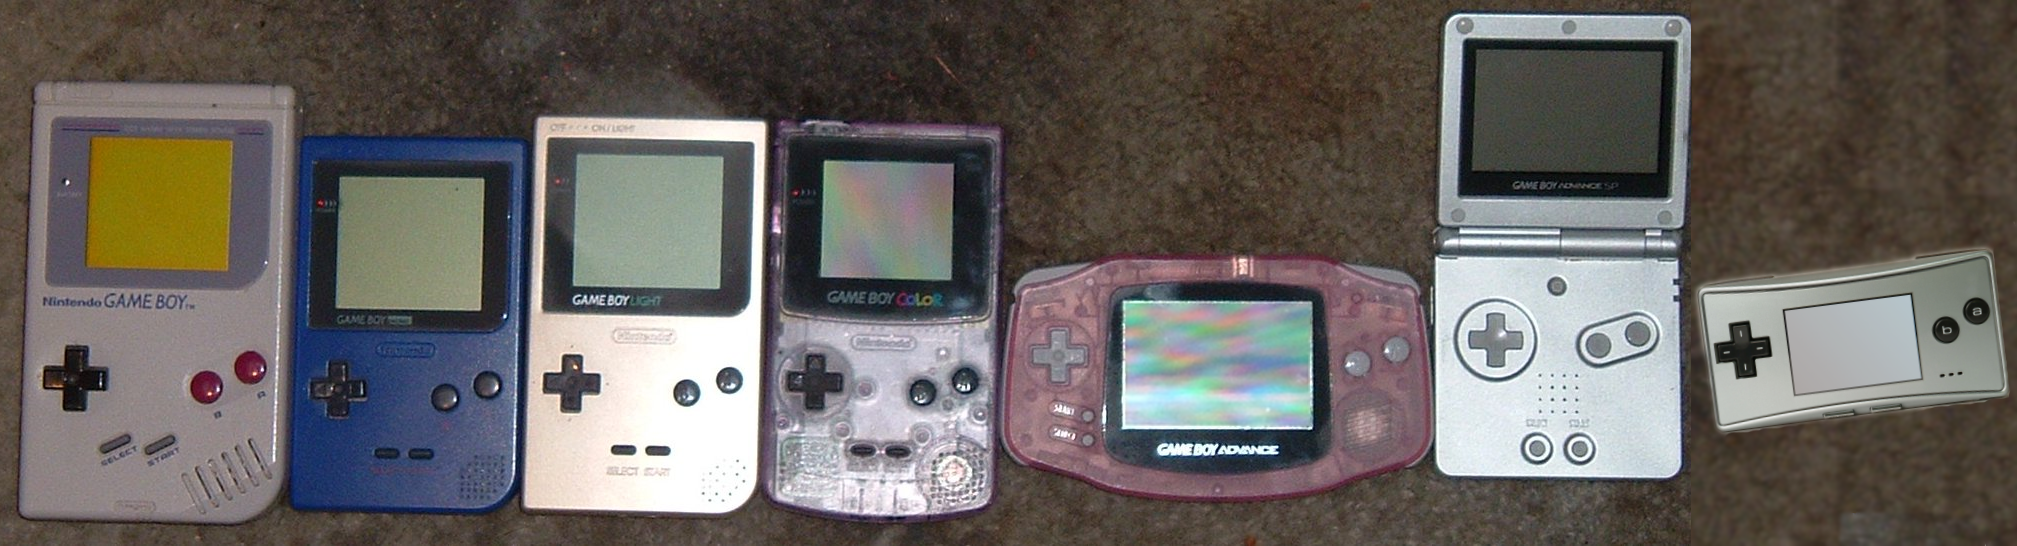 File Gameboyline With Ds Png Wikimedia Commons